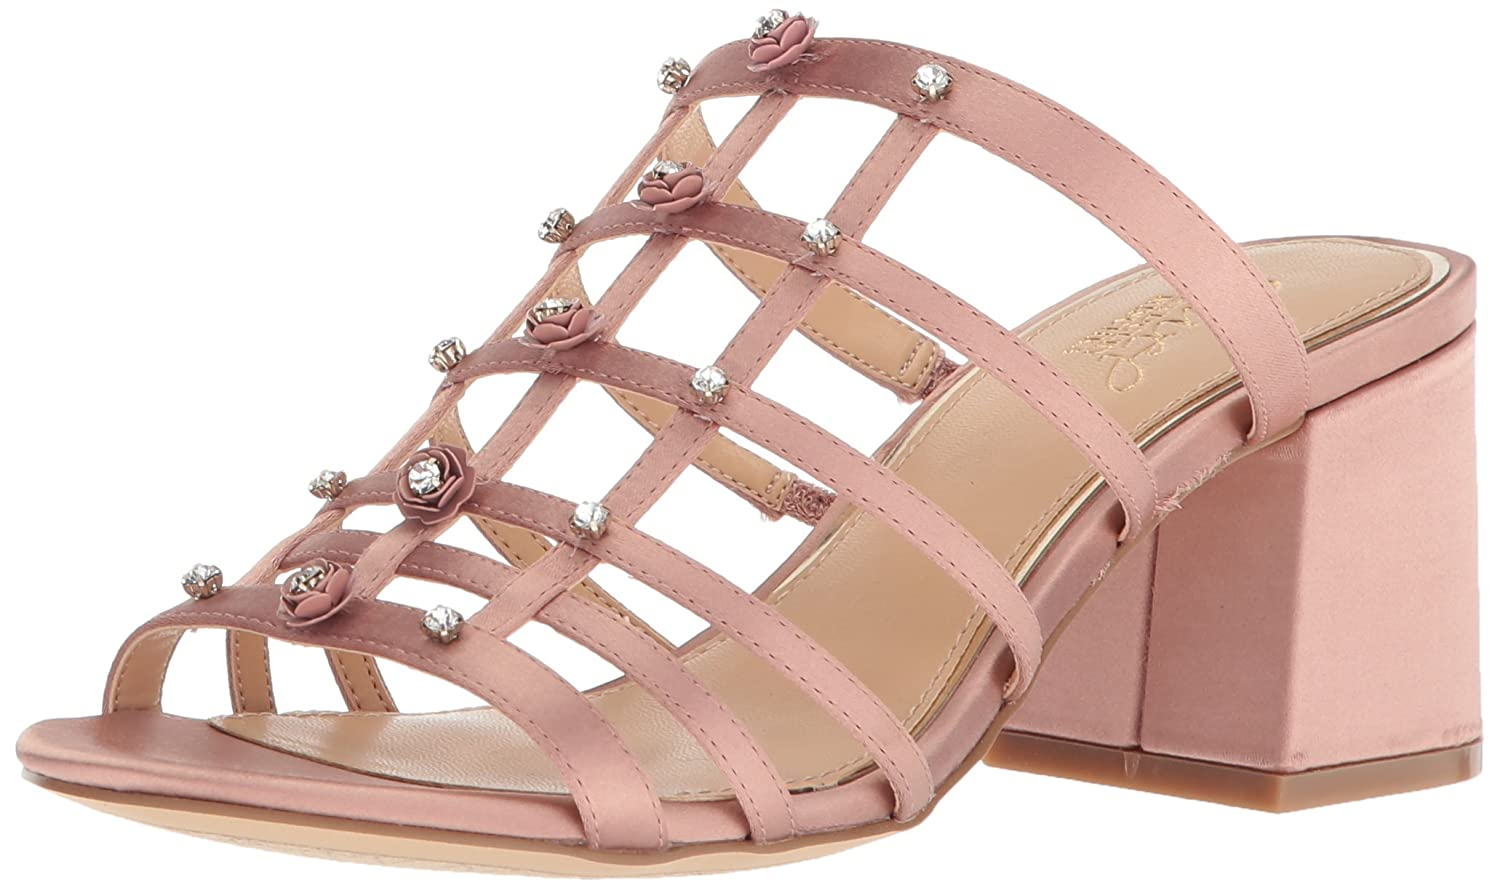 Badgley Mischka Jewel Women's Thorne Slide Sandal B071JZV8JS 10 B(M) US|Blush